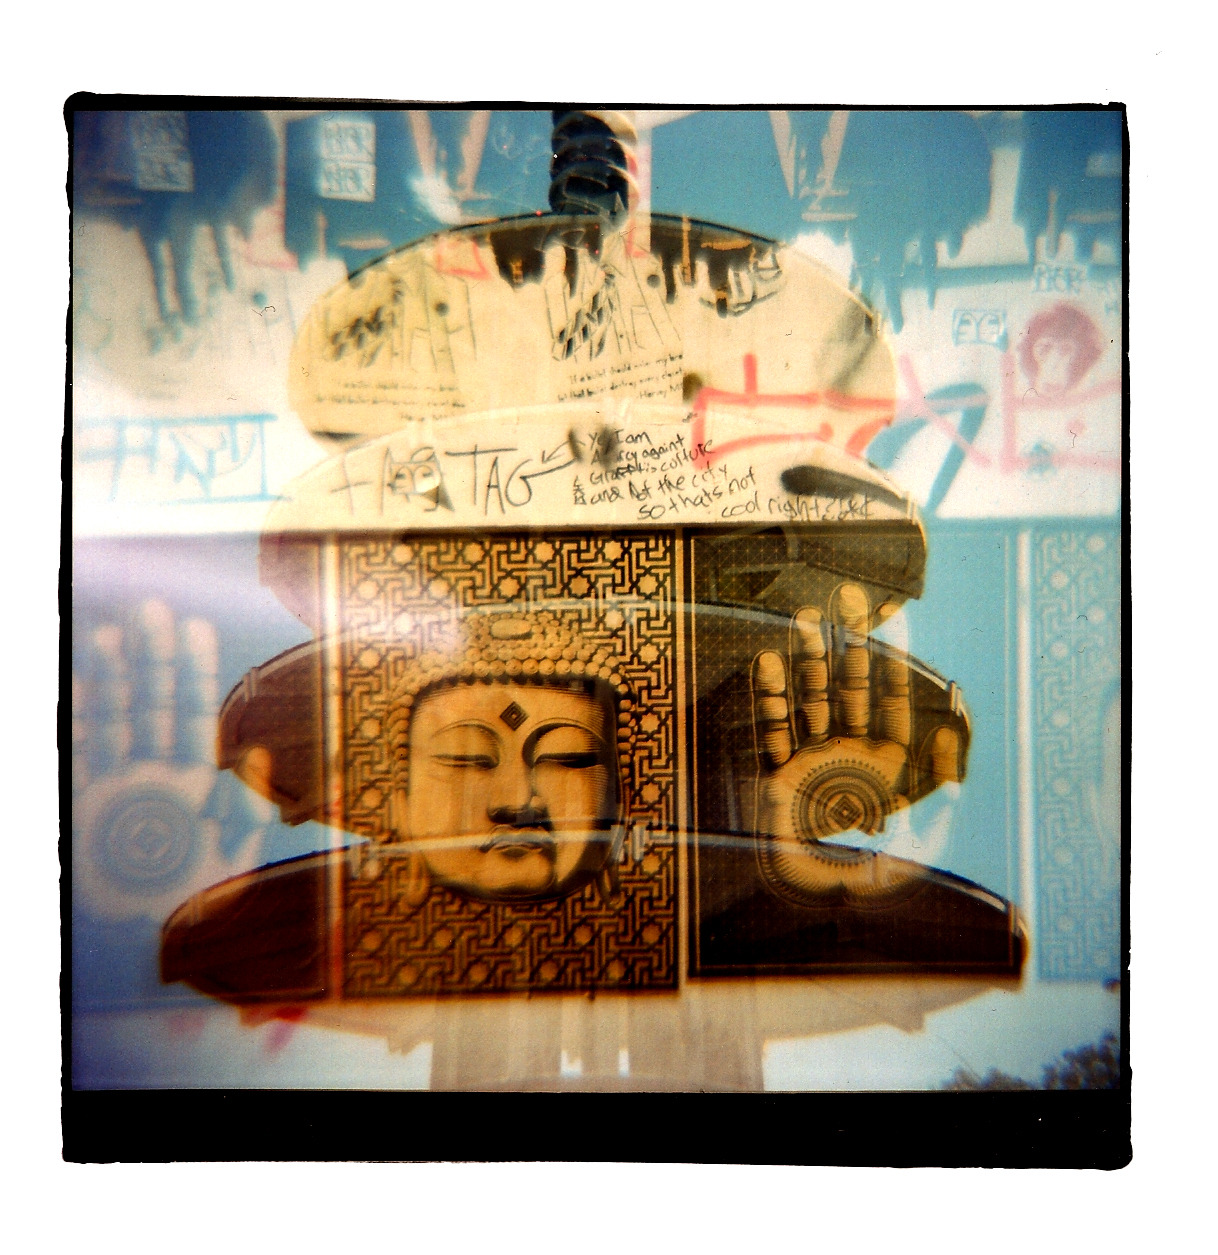 Taken with my Diana+ Dreamer in San Francisco.